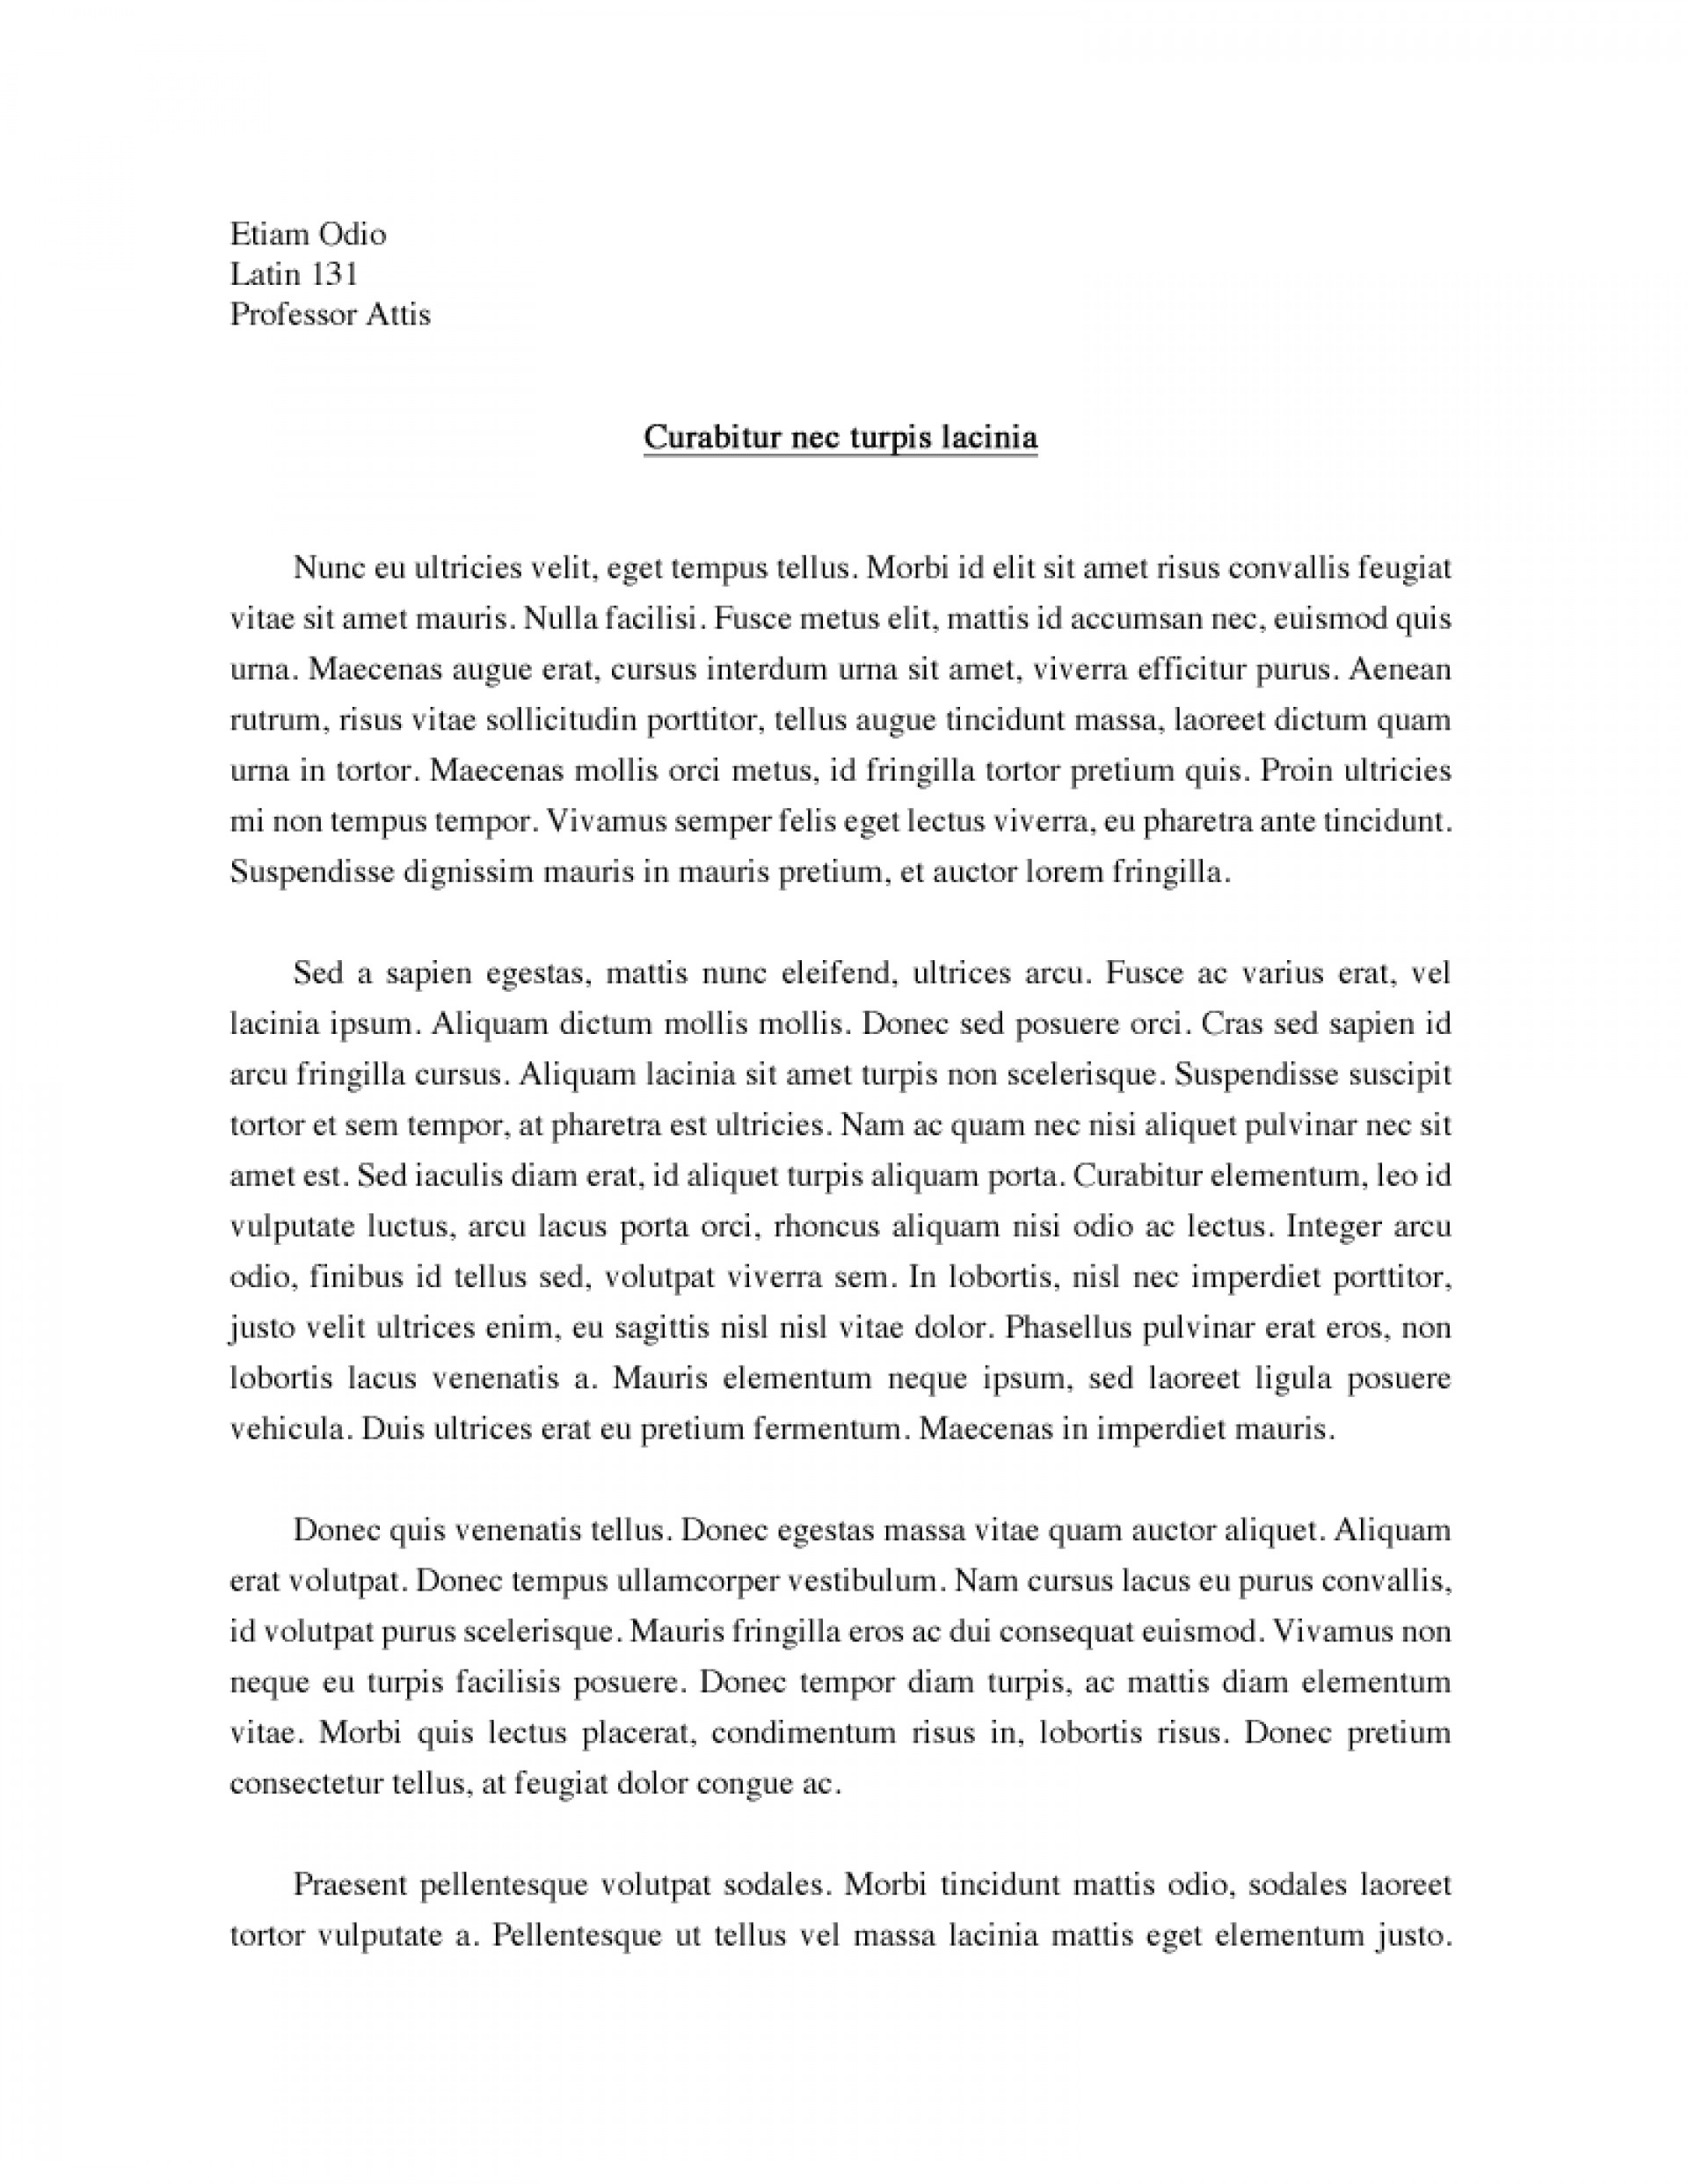 005 Argumentative Essay On Social Networking Sites Example Topics Unique Education Higher For Early Childhood 1920